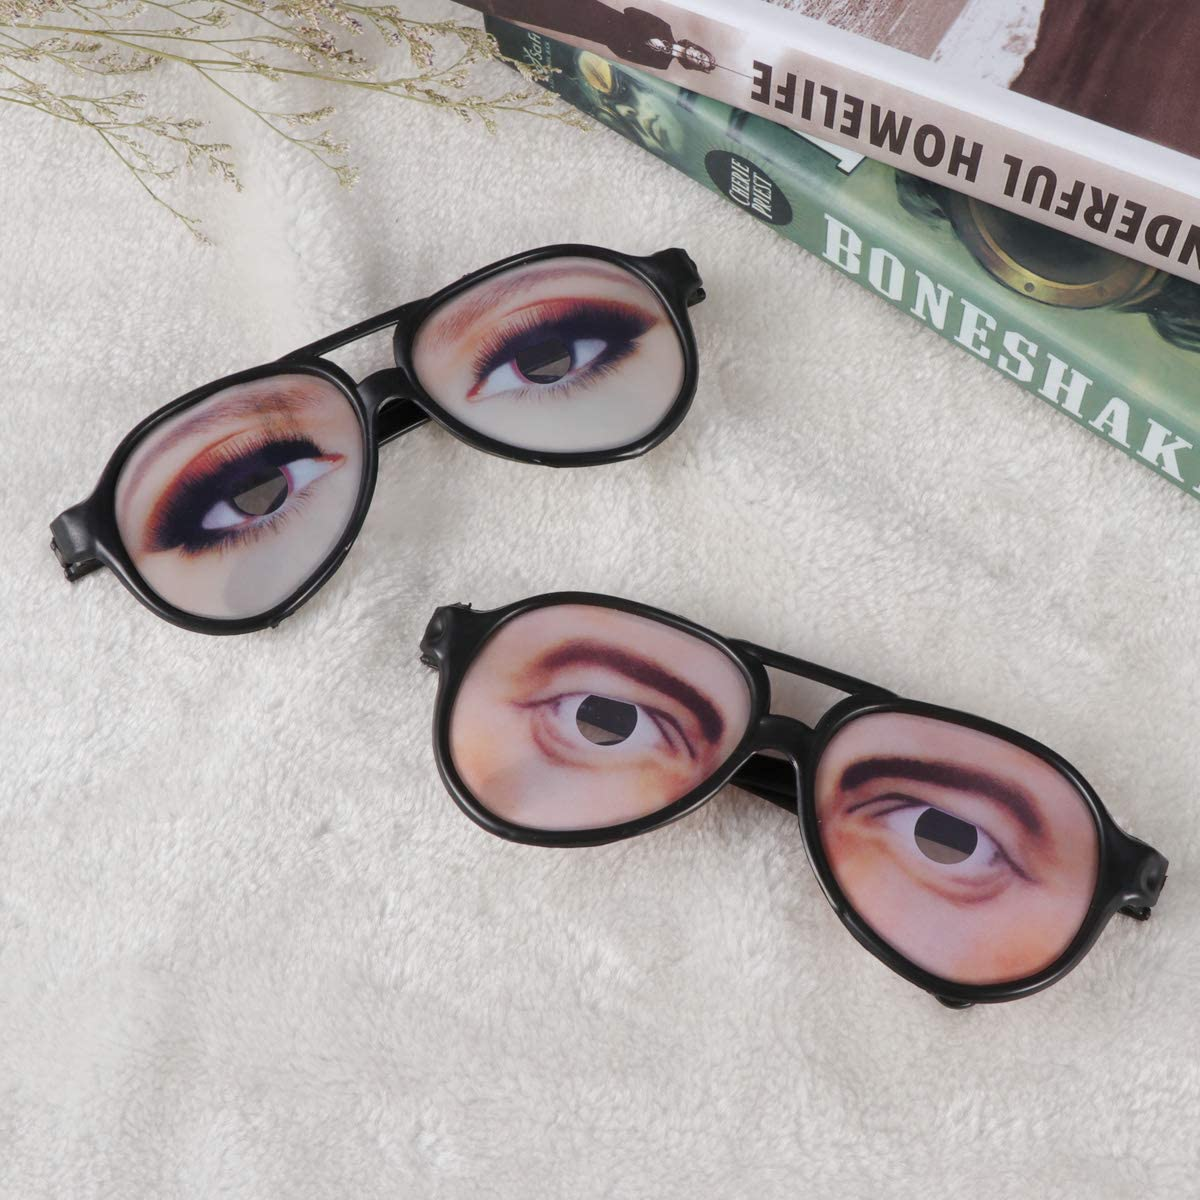 TINKSKY Halloween Trick Toy Male Funny Eyes Glasses Prank Disguise Eyeglass Party Props for Men